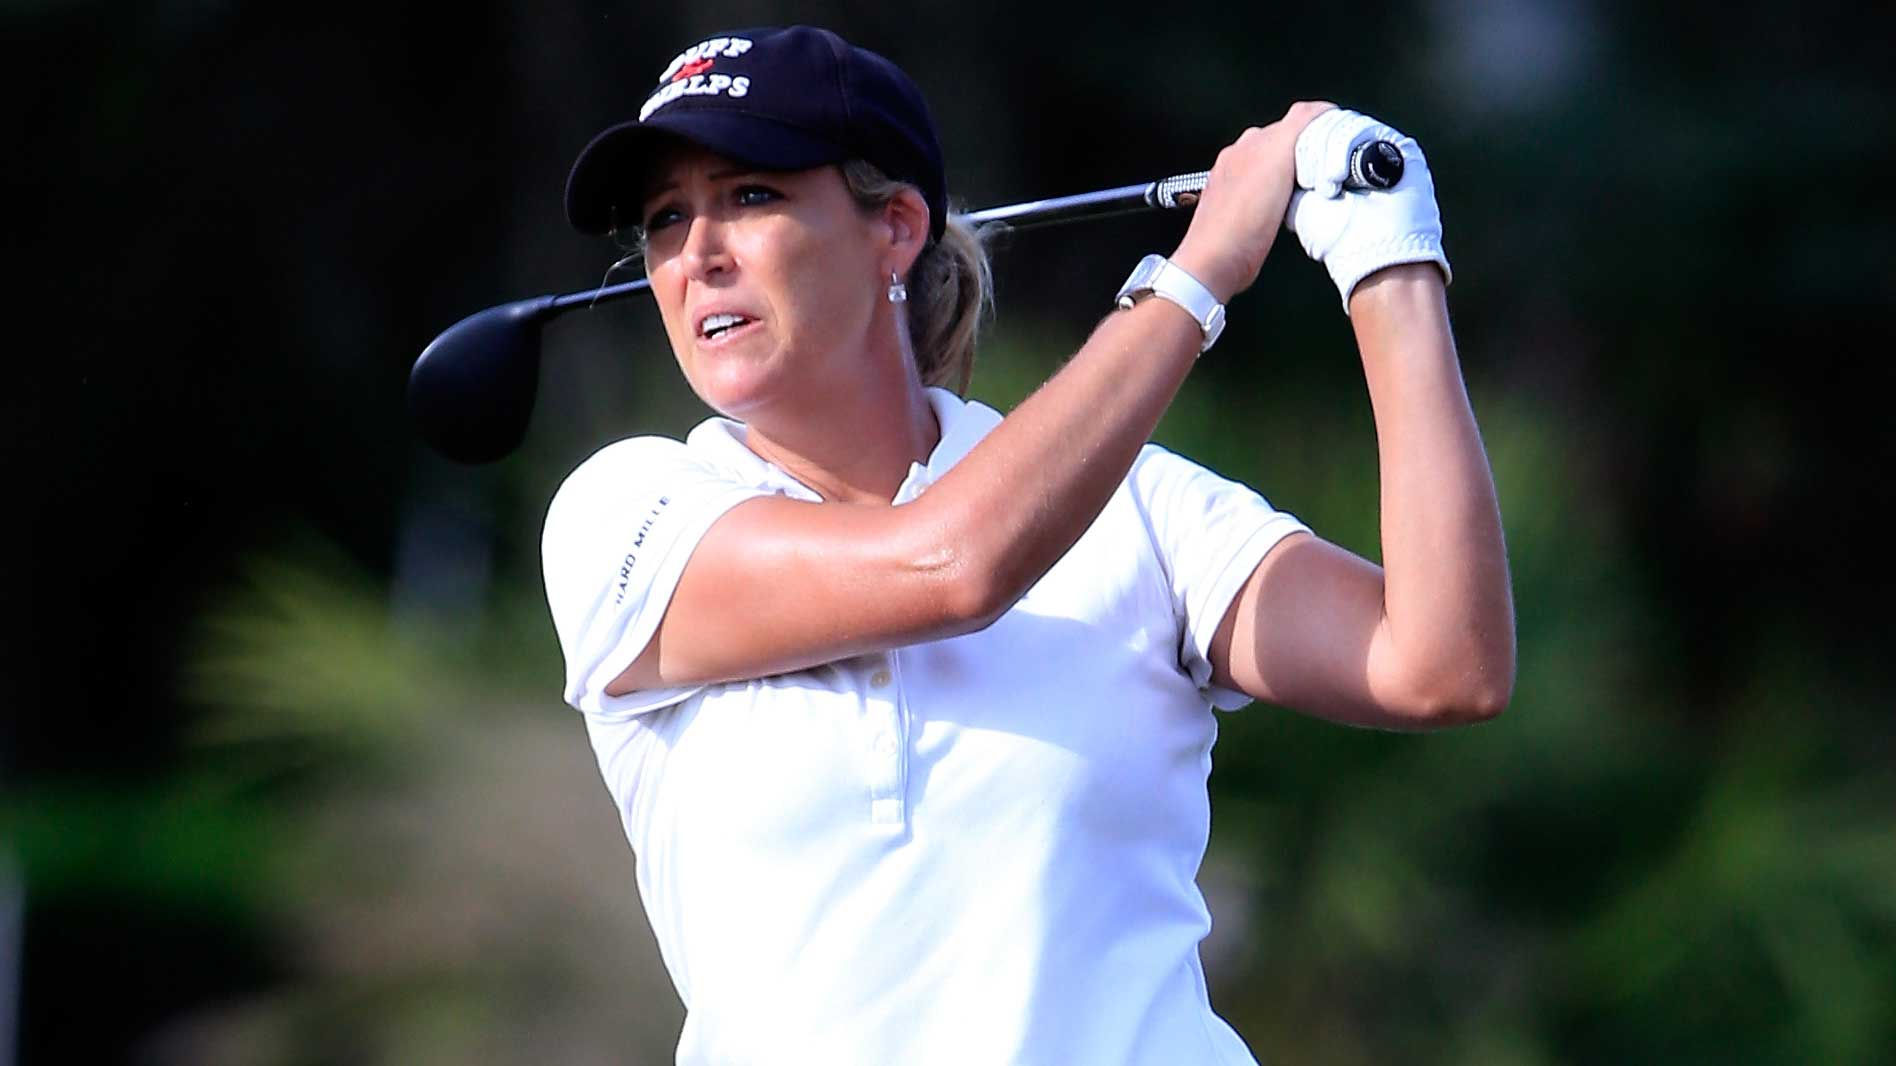 Cristie Kerr of the United States plays a shot on the 17th hole during the second round of the CME Group Tour Championship at Tiburon Golf Club